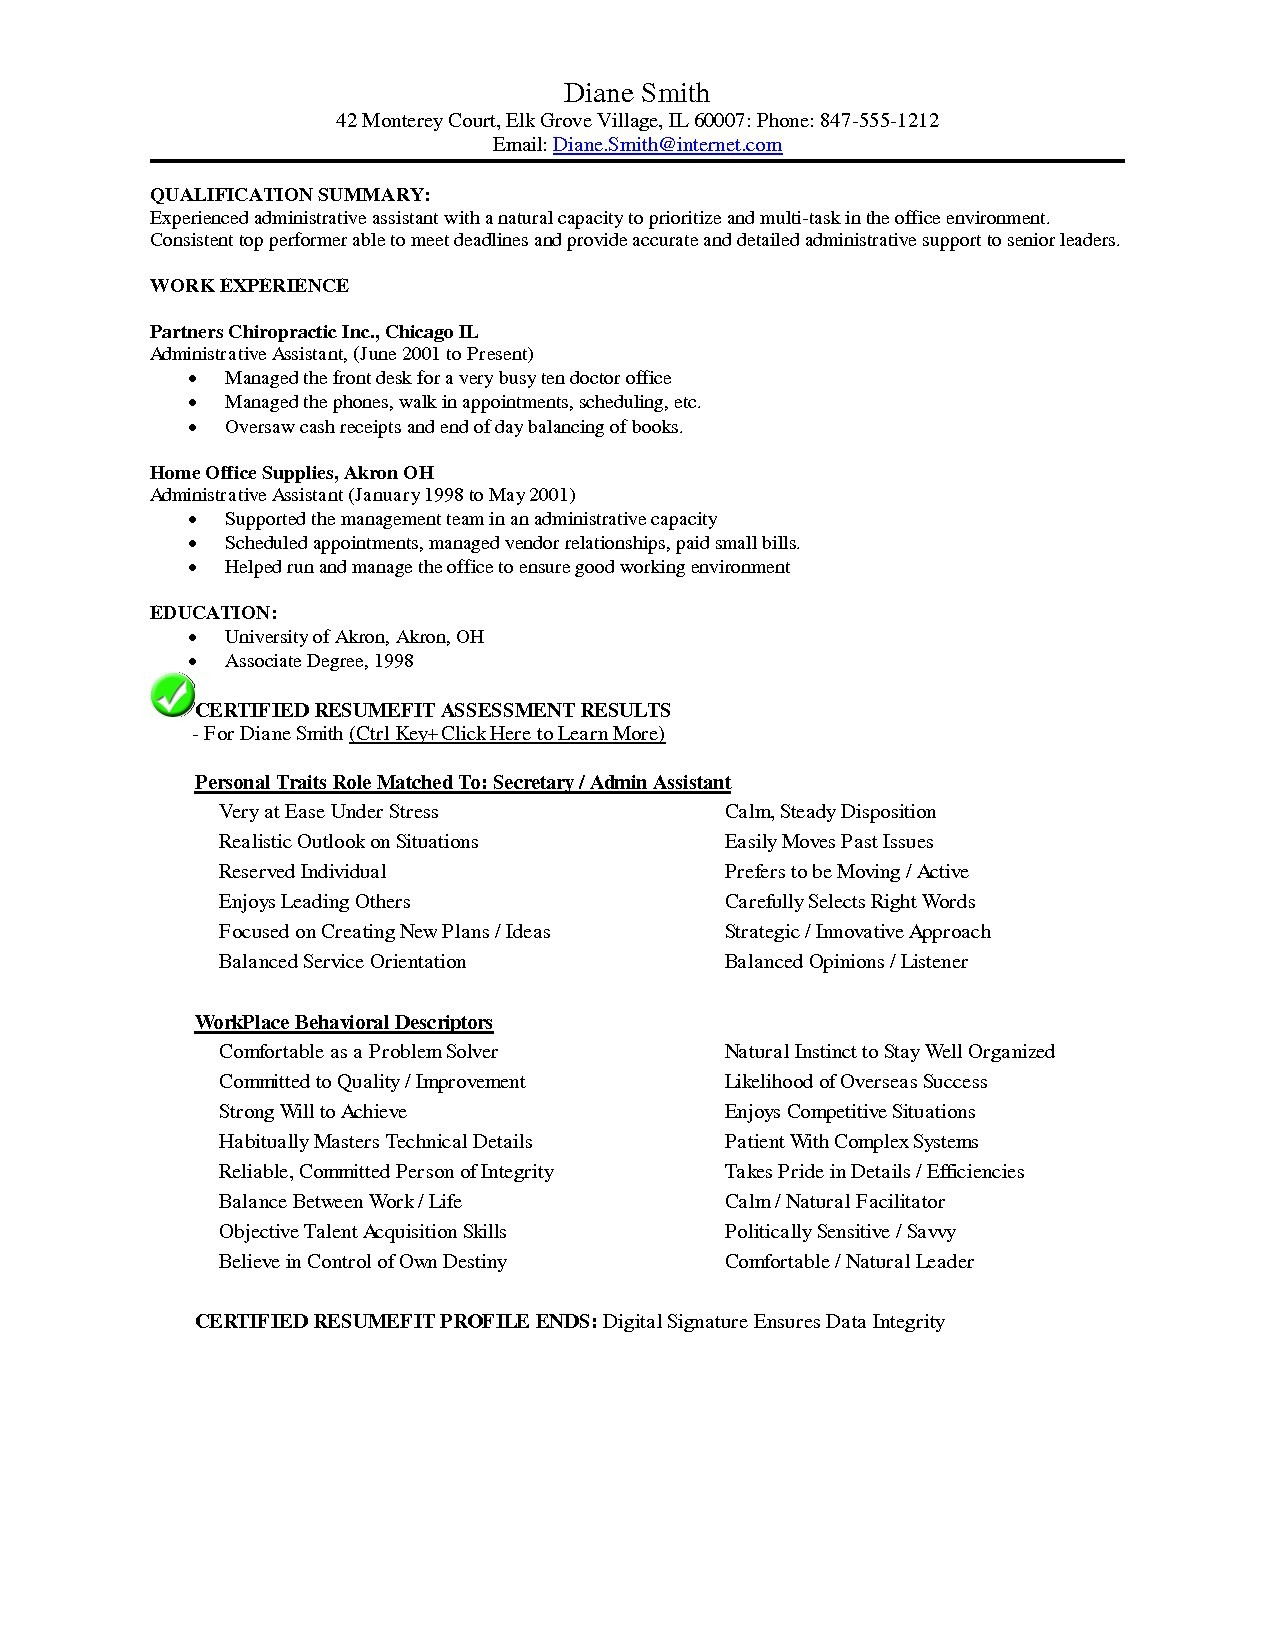 Physician Resume Template Word - 23 Resume Templates for Nursing Jobs